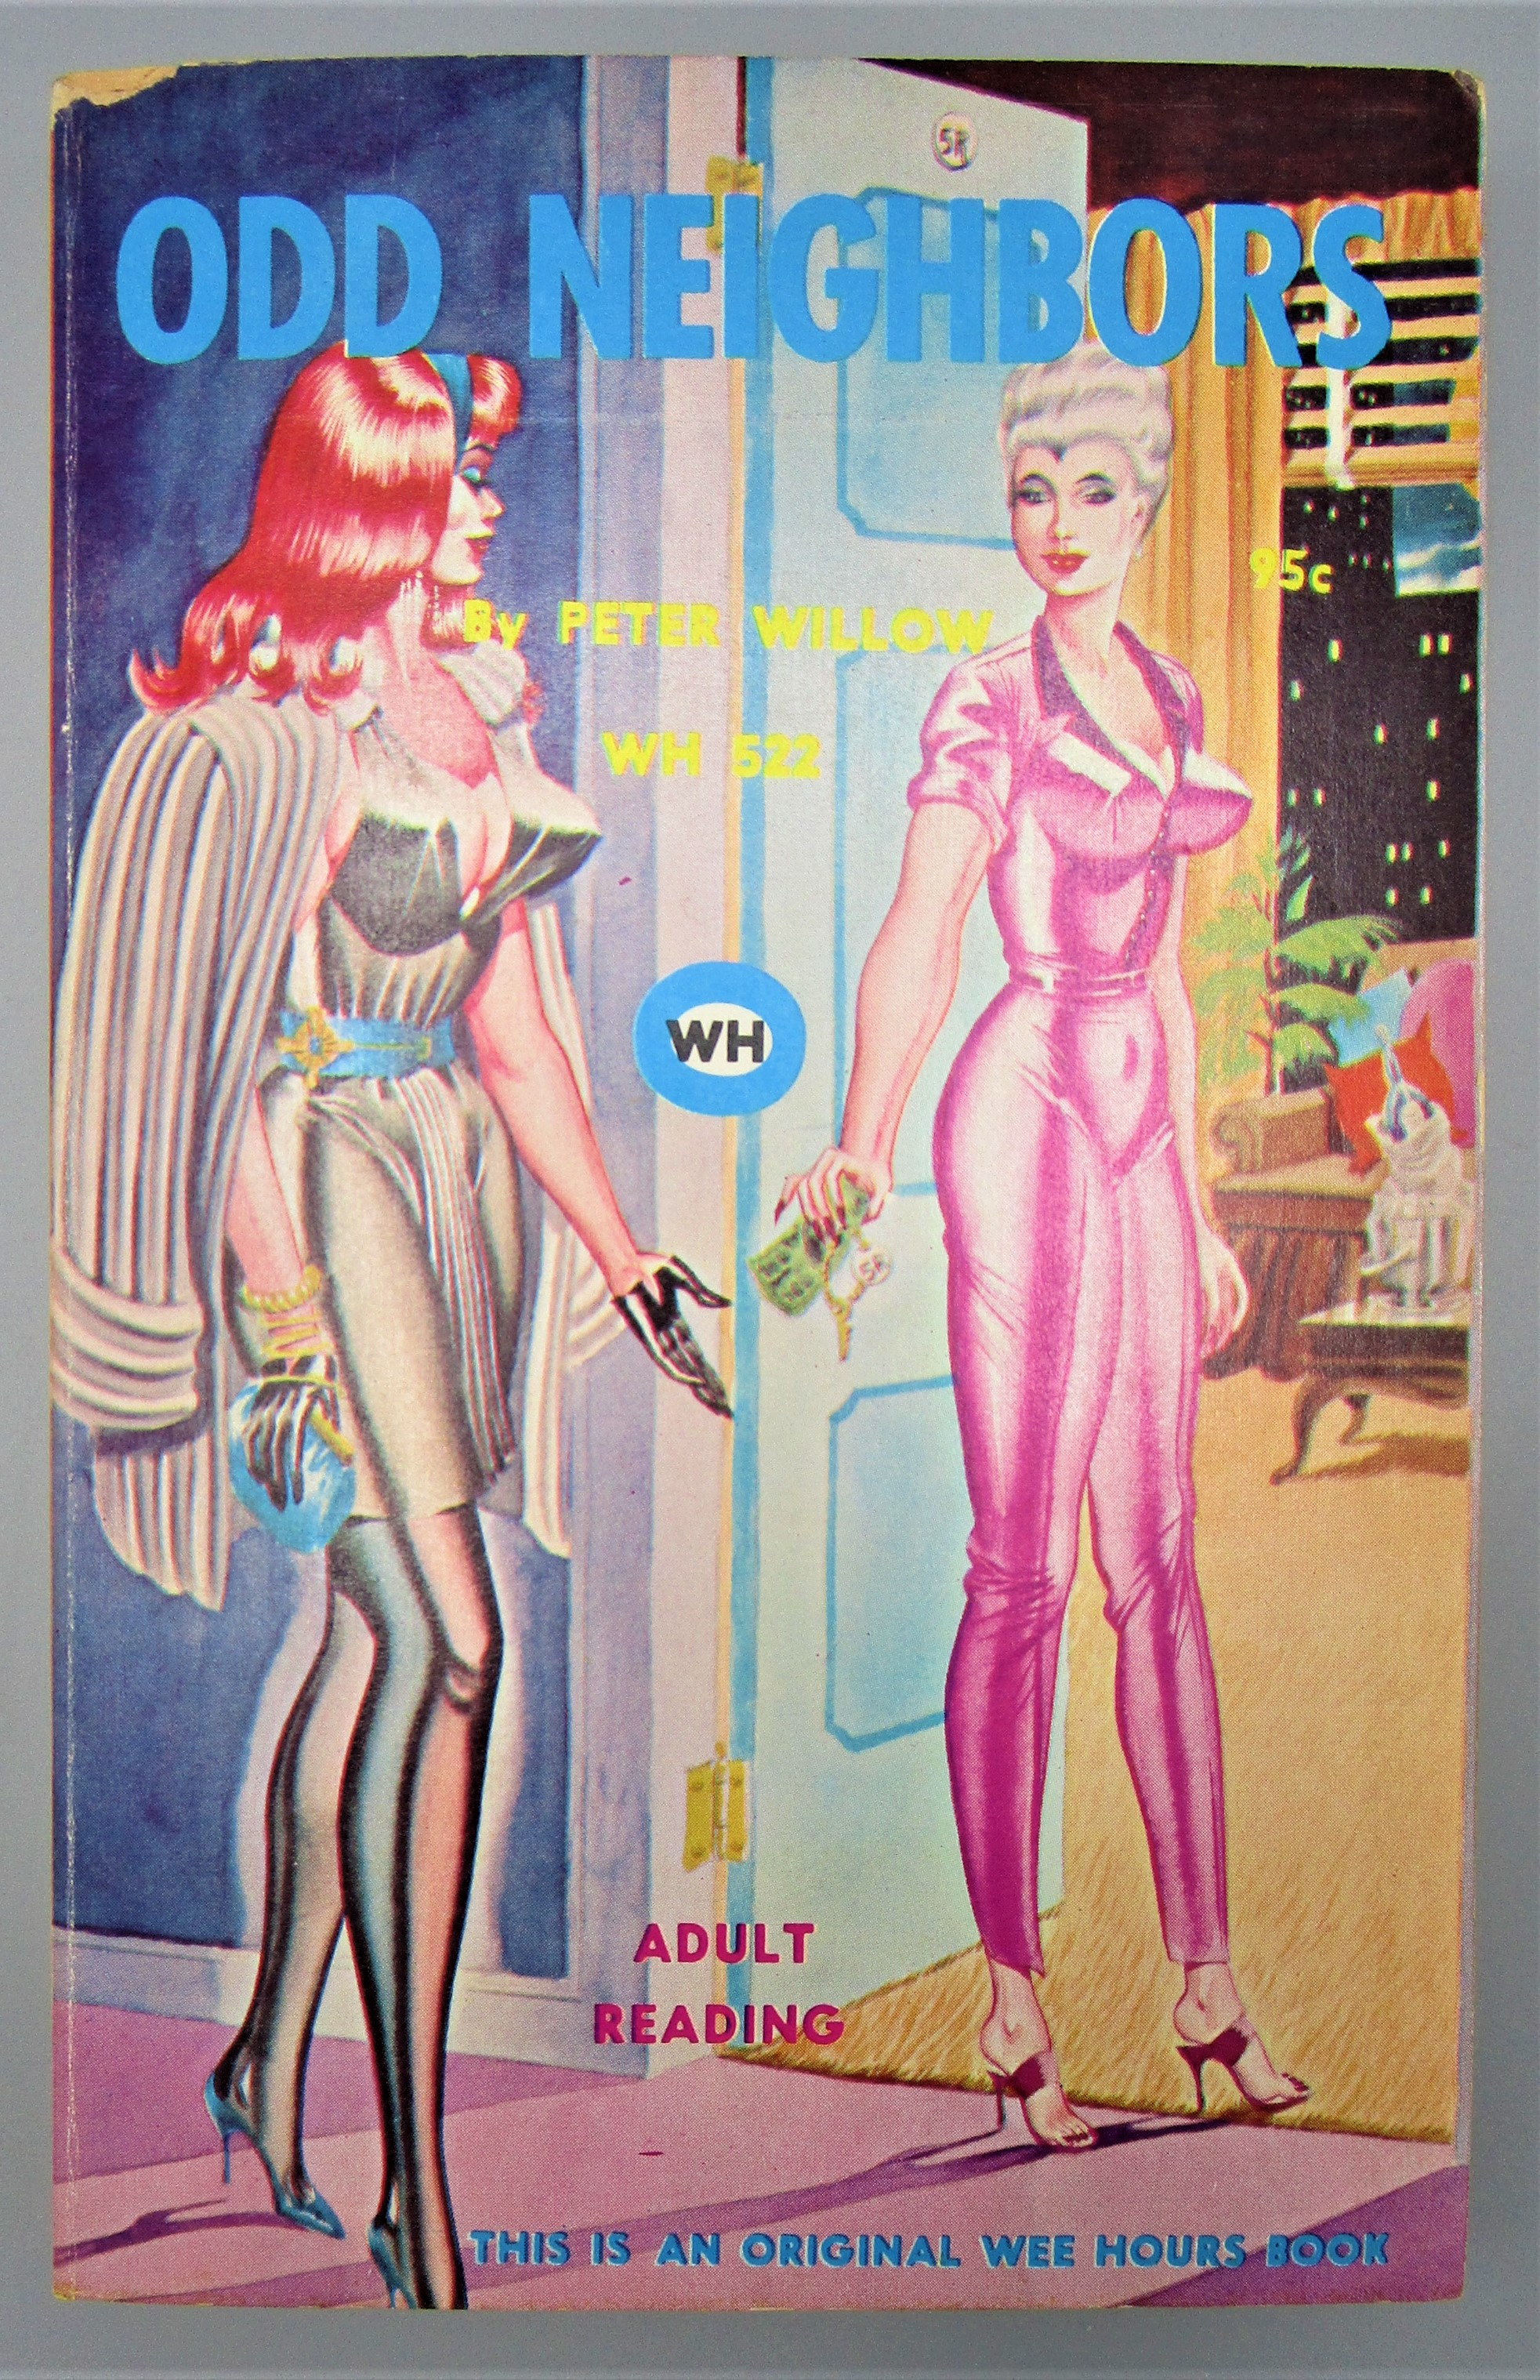 ODD NEIGHBORS, by Peter Willow - 1967 [1st Ed]